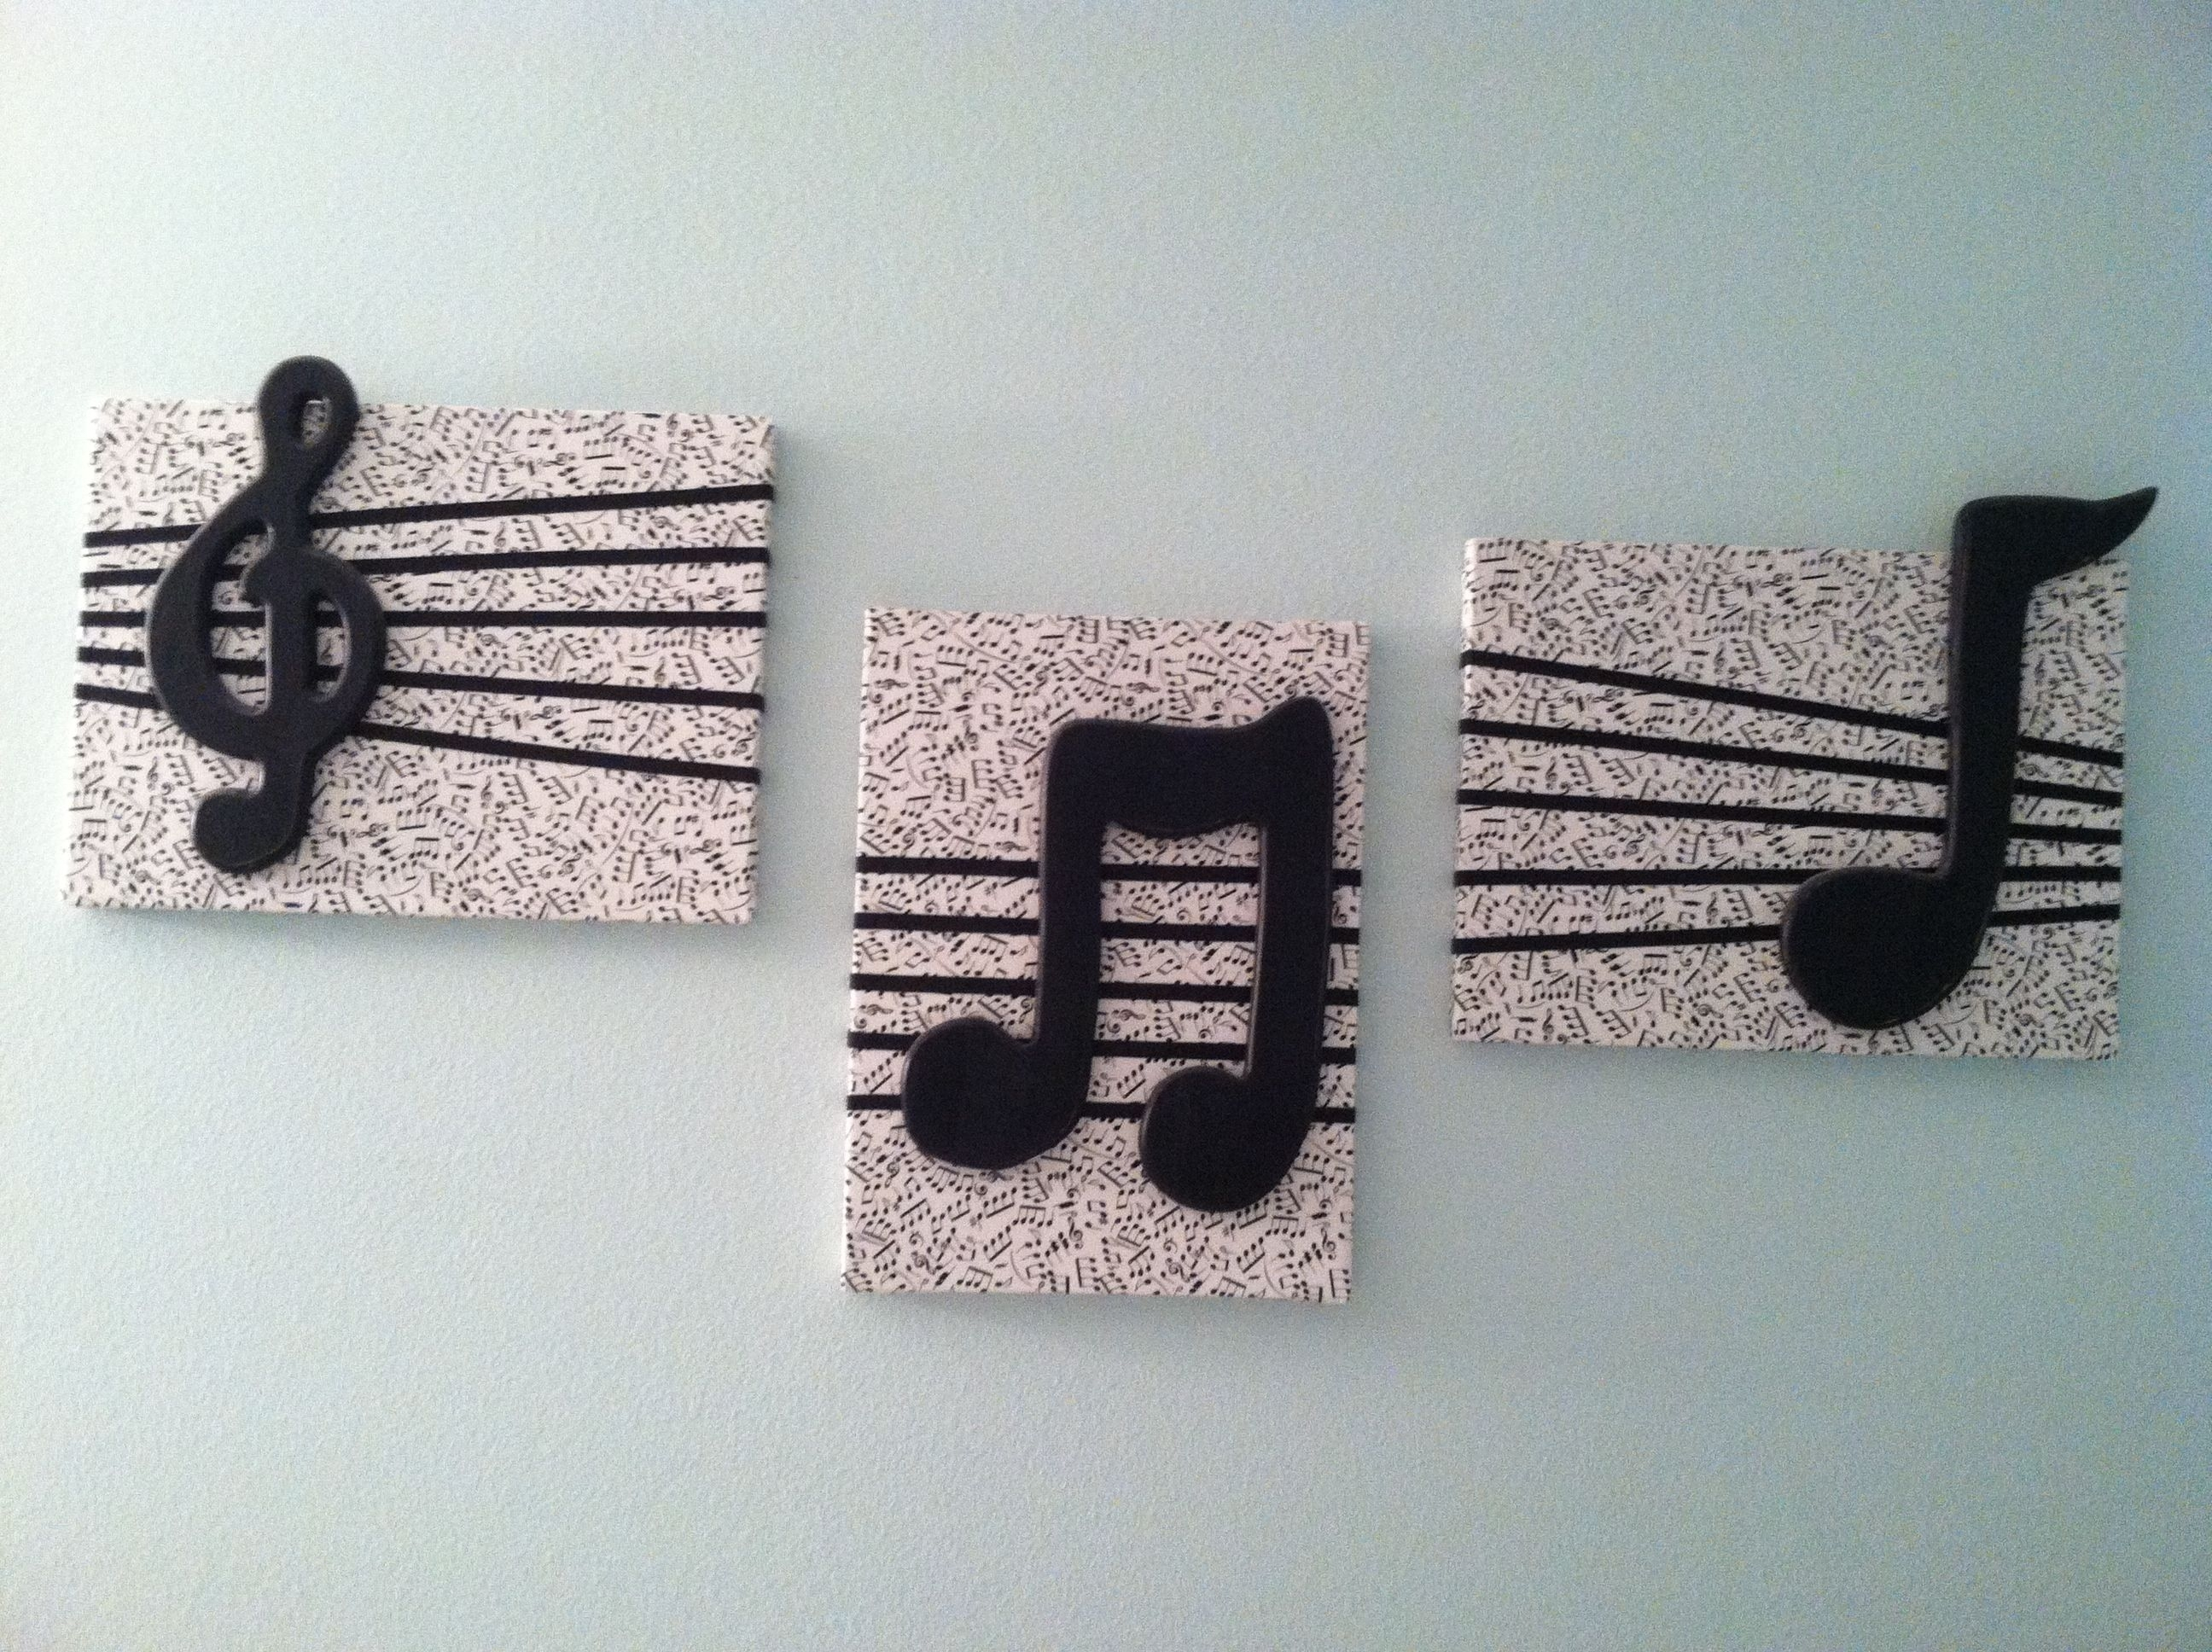 Diy Wall Decor Cover Canvas Squares With Music Note Fabric, Add Pertaining To Most Up To Date Fabric Covered Squares Wall Art (Gallery 8 of 15)